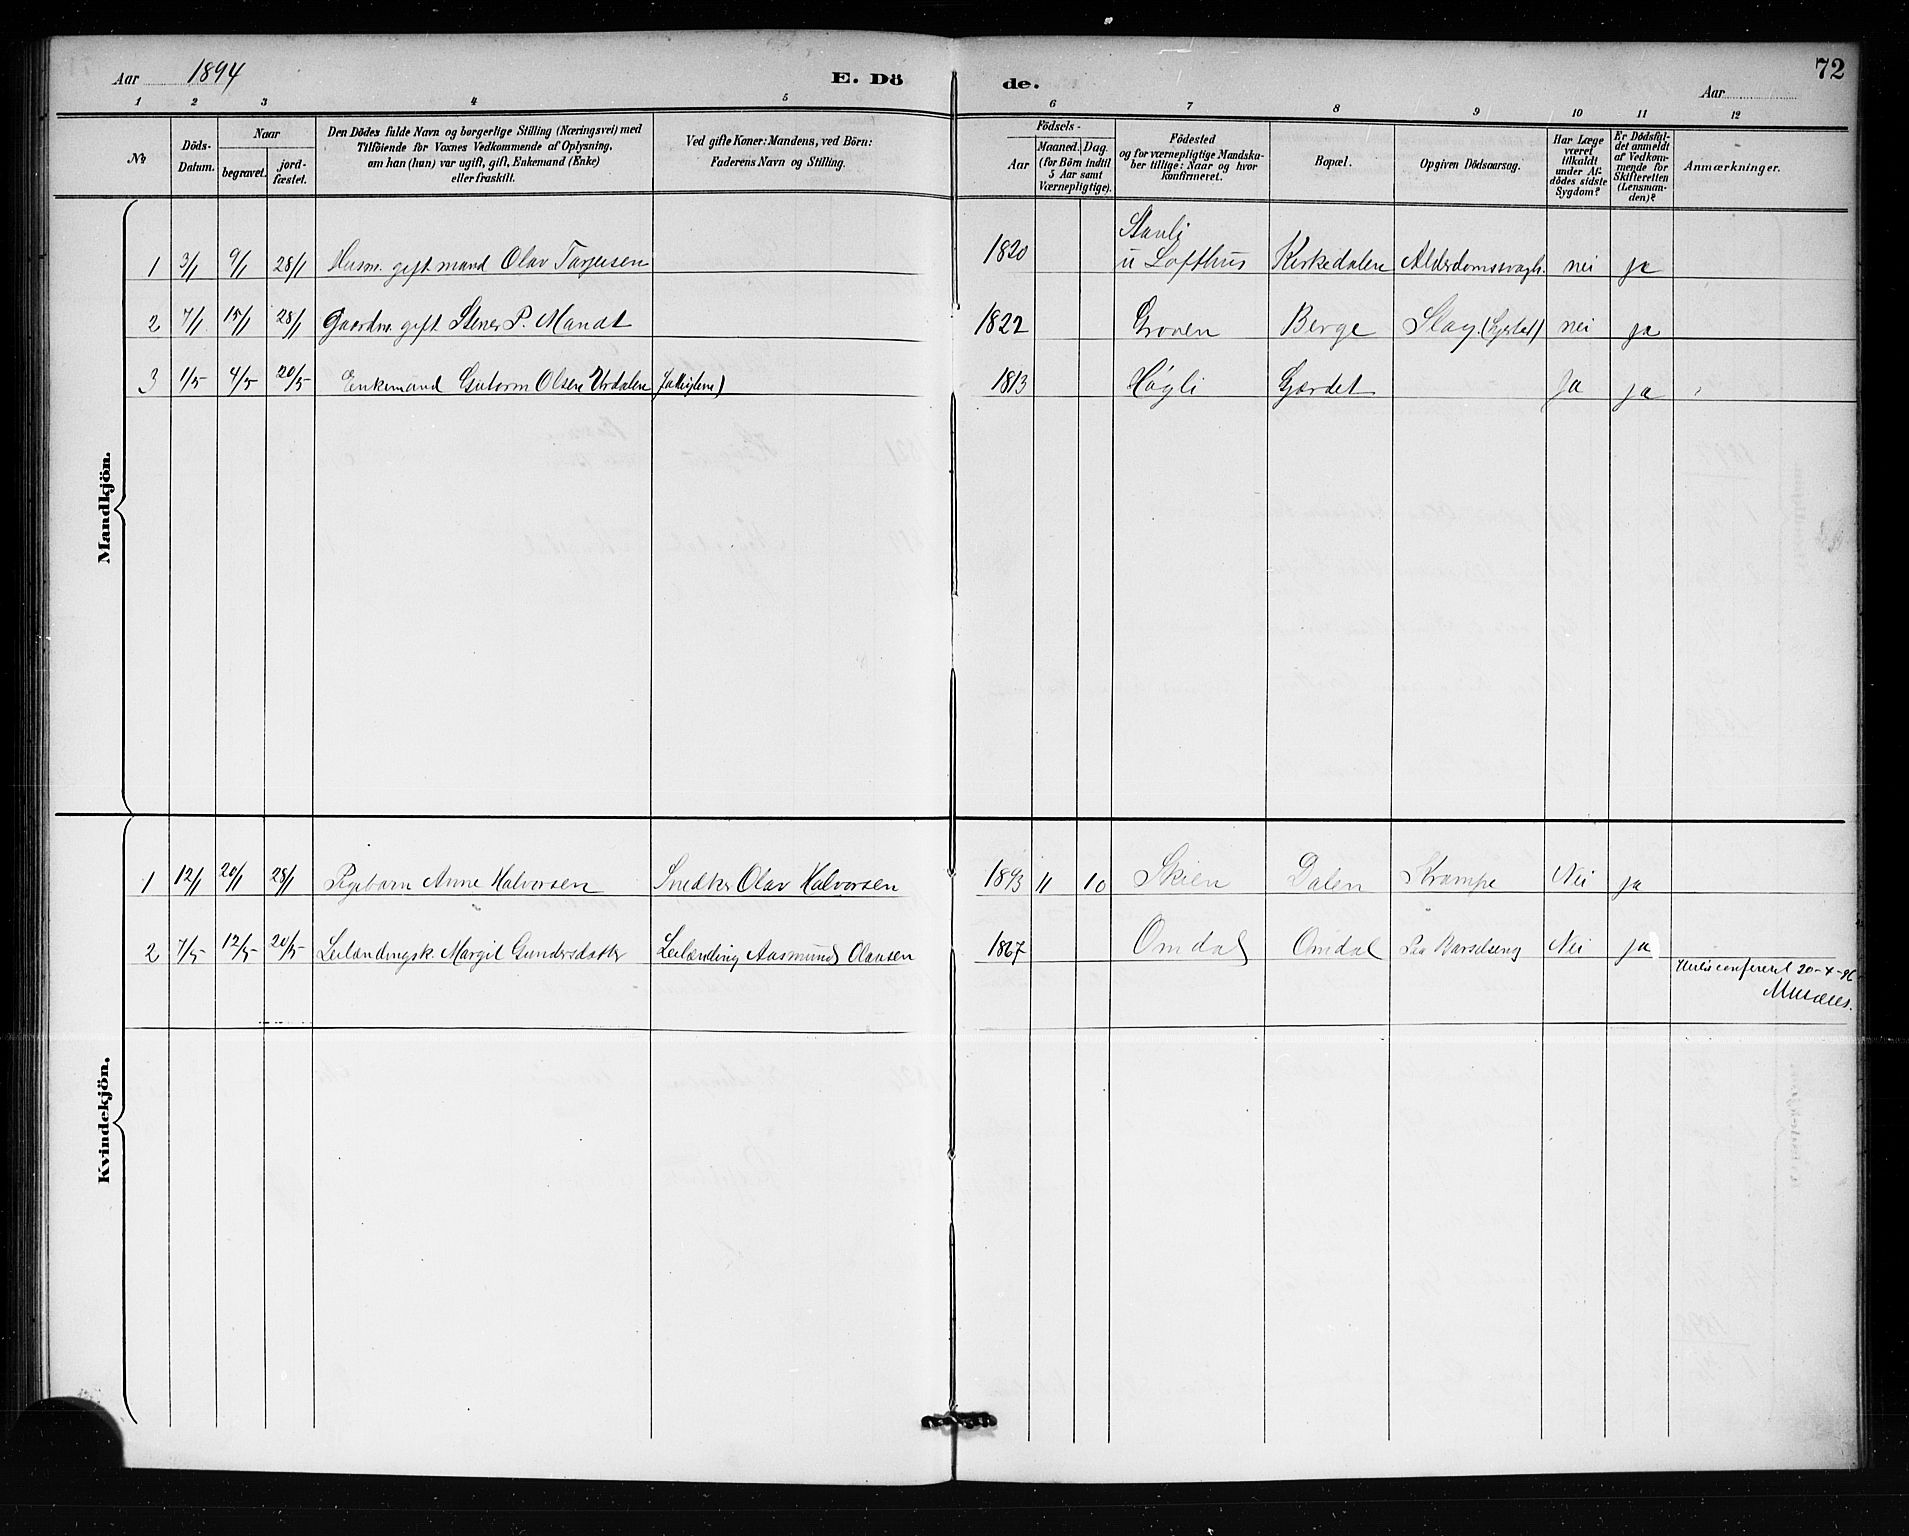 SAKO, Lårdal kirkebøker, G/Gb/L0003: Parish register (copy) no. II 3, 1889-1920, p. 72